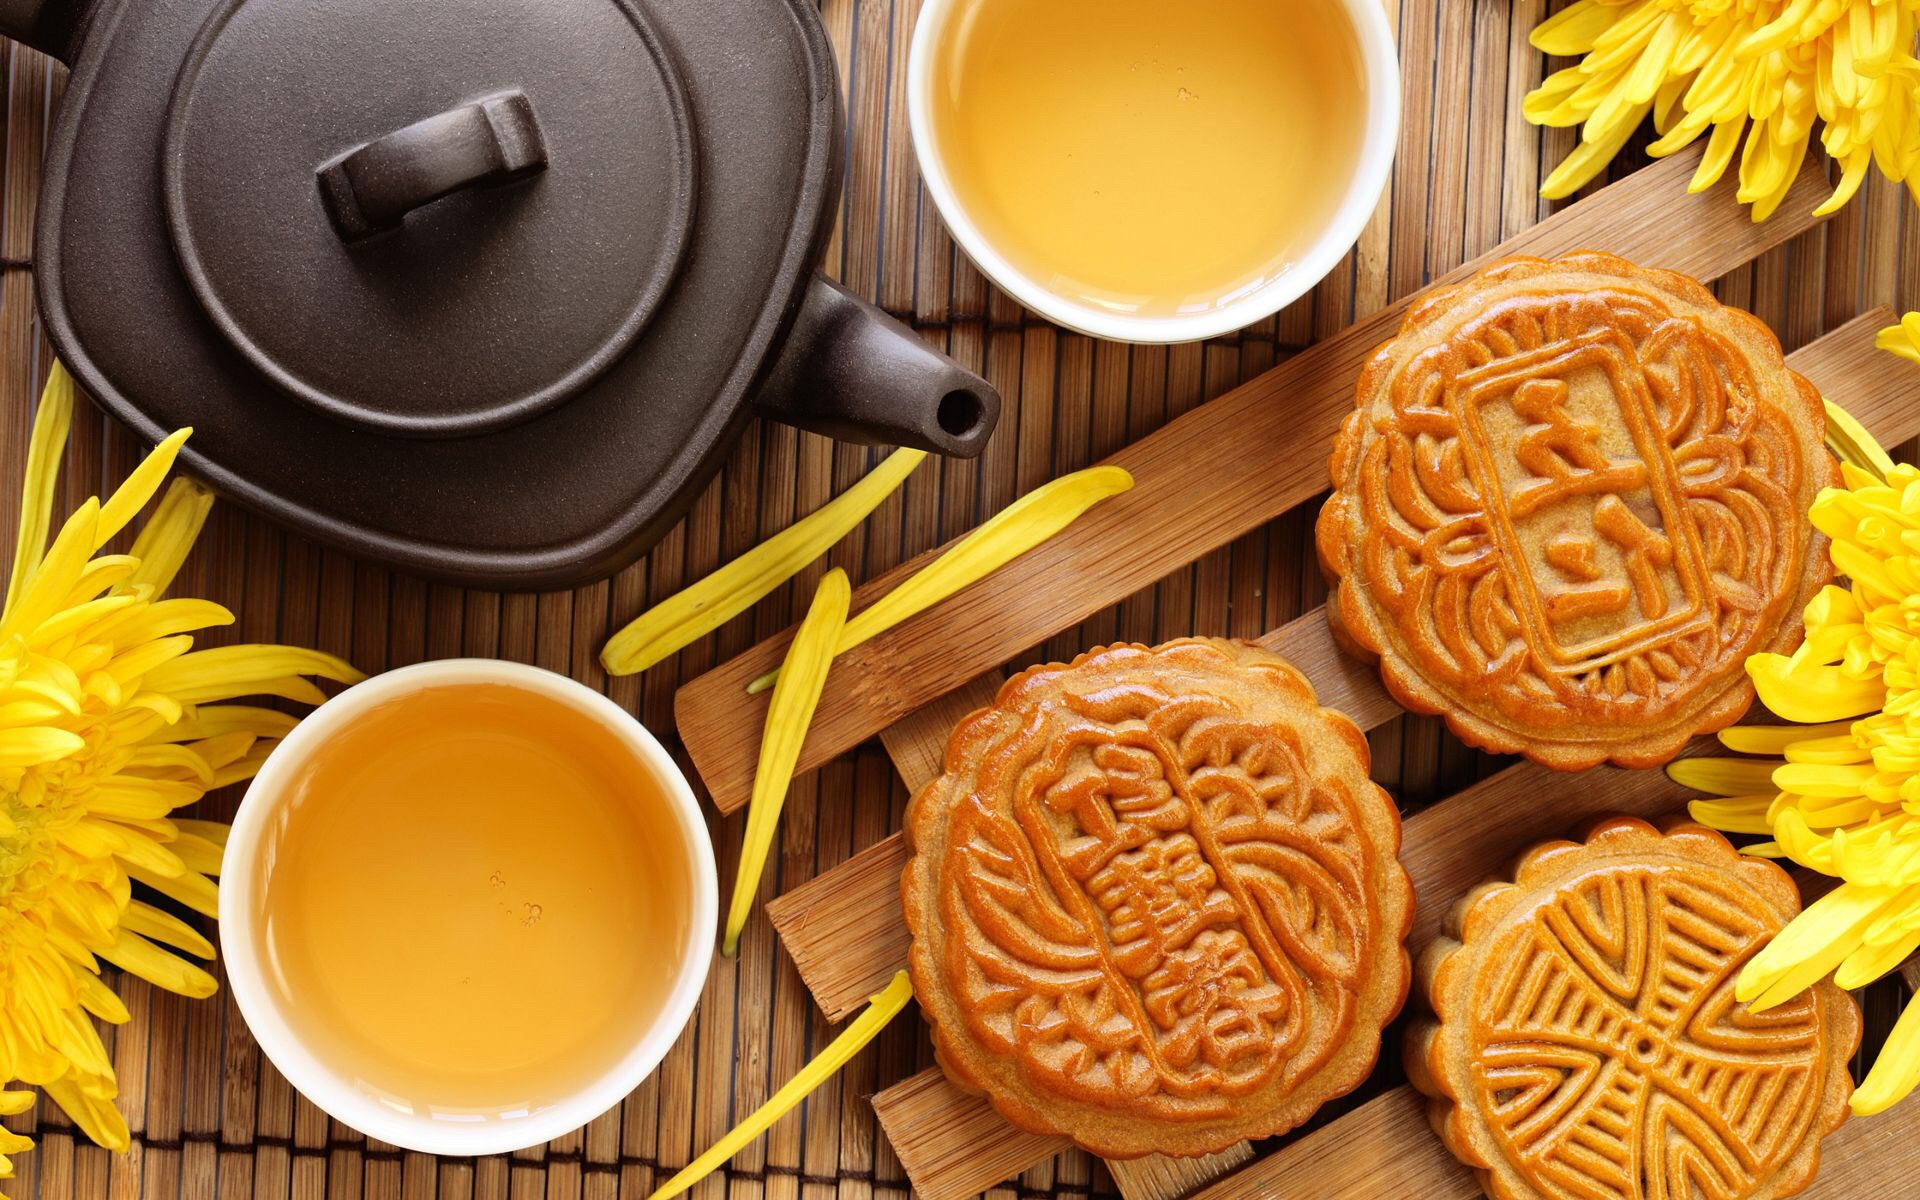 Mooncakes are central to the Mid-Autumn festivities. (Image source: www.allgreatimages.com)